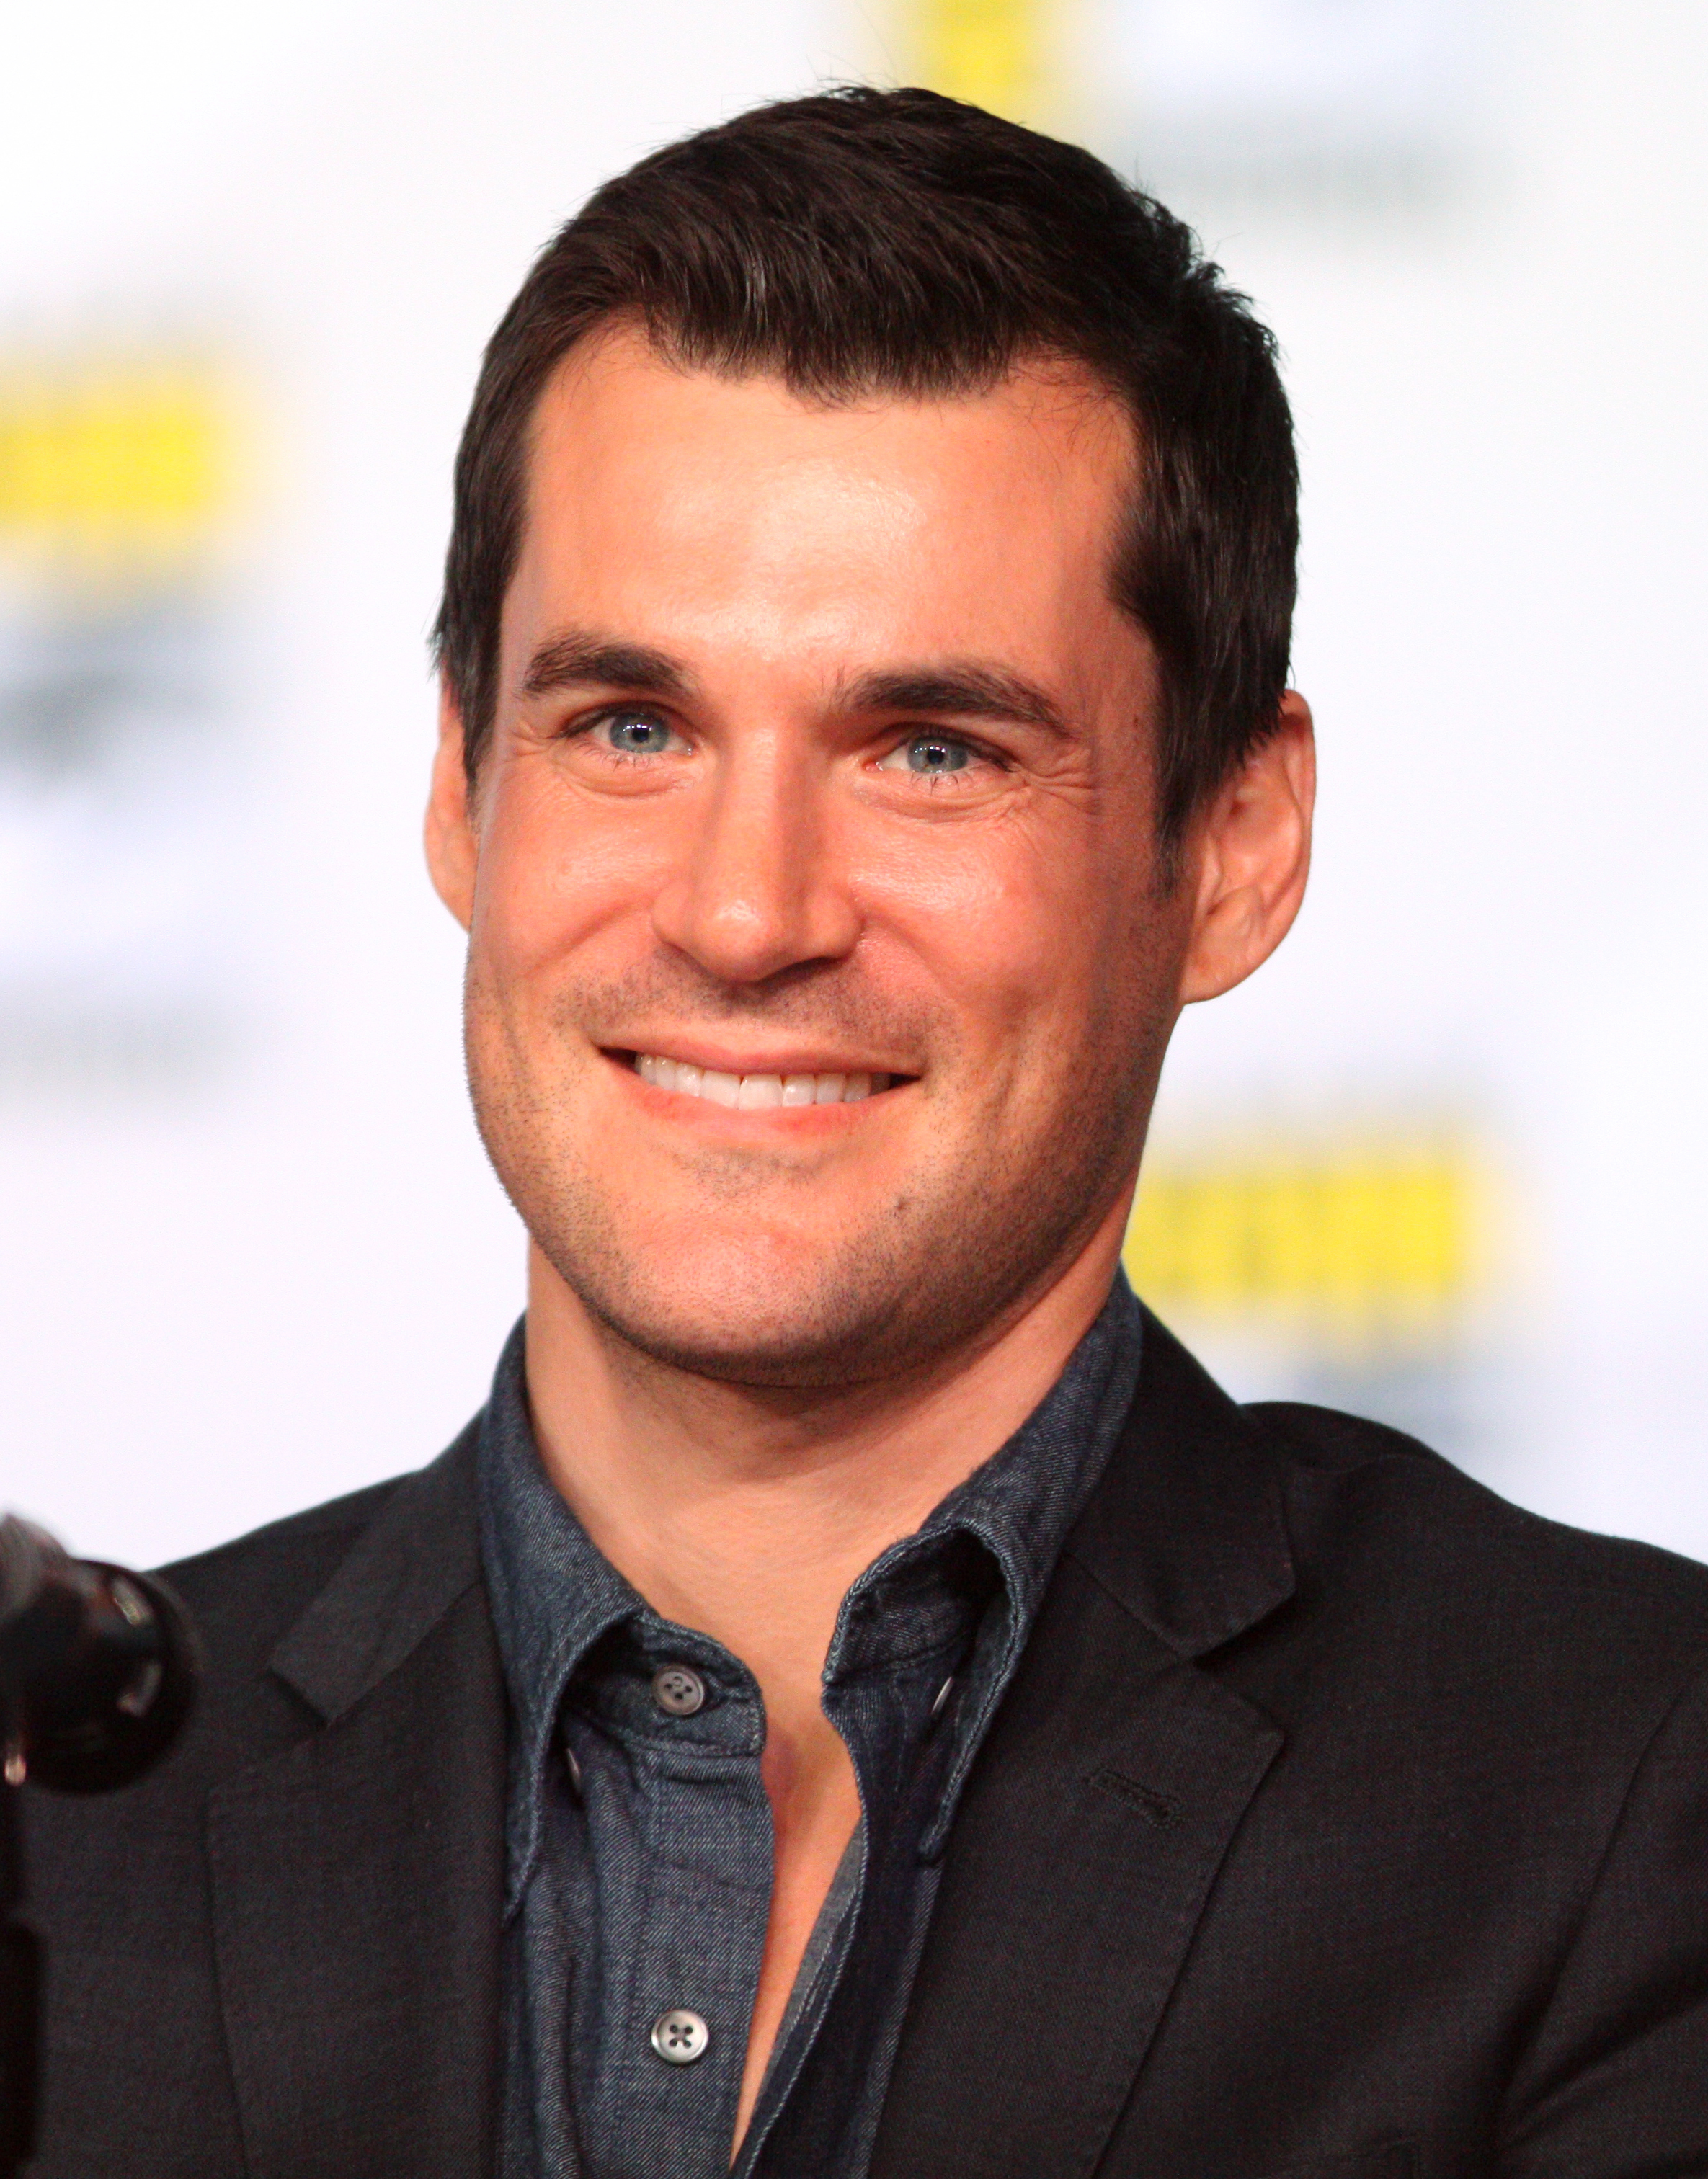 The 42-year old son of father (?) and mother(?), 178 cm tall Sean Maher in 2017 photo